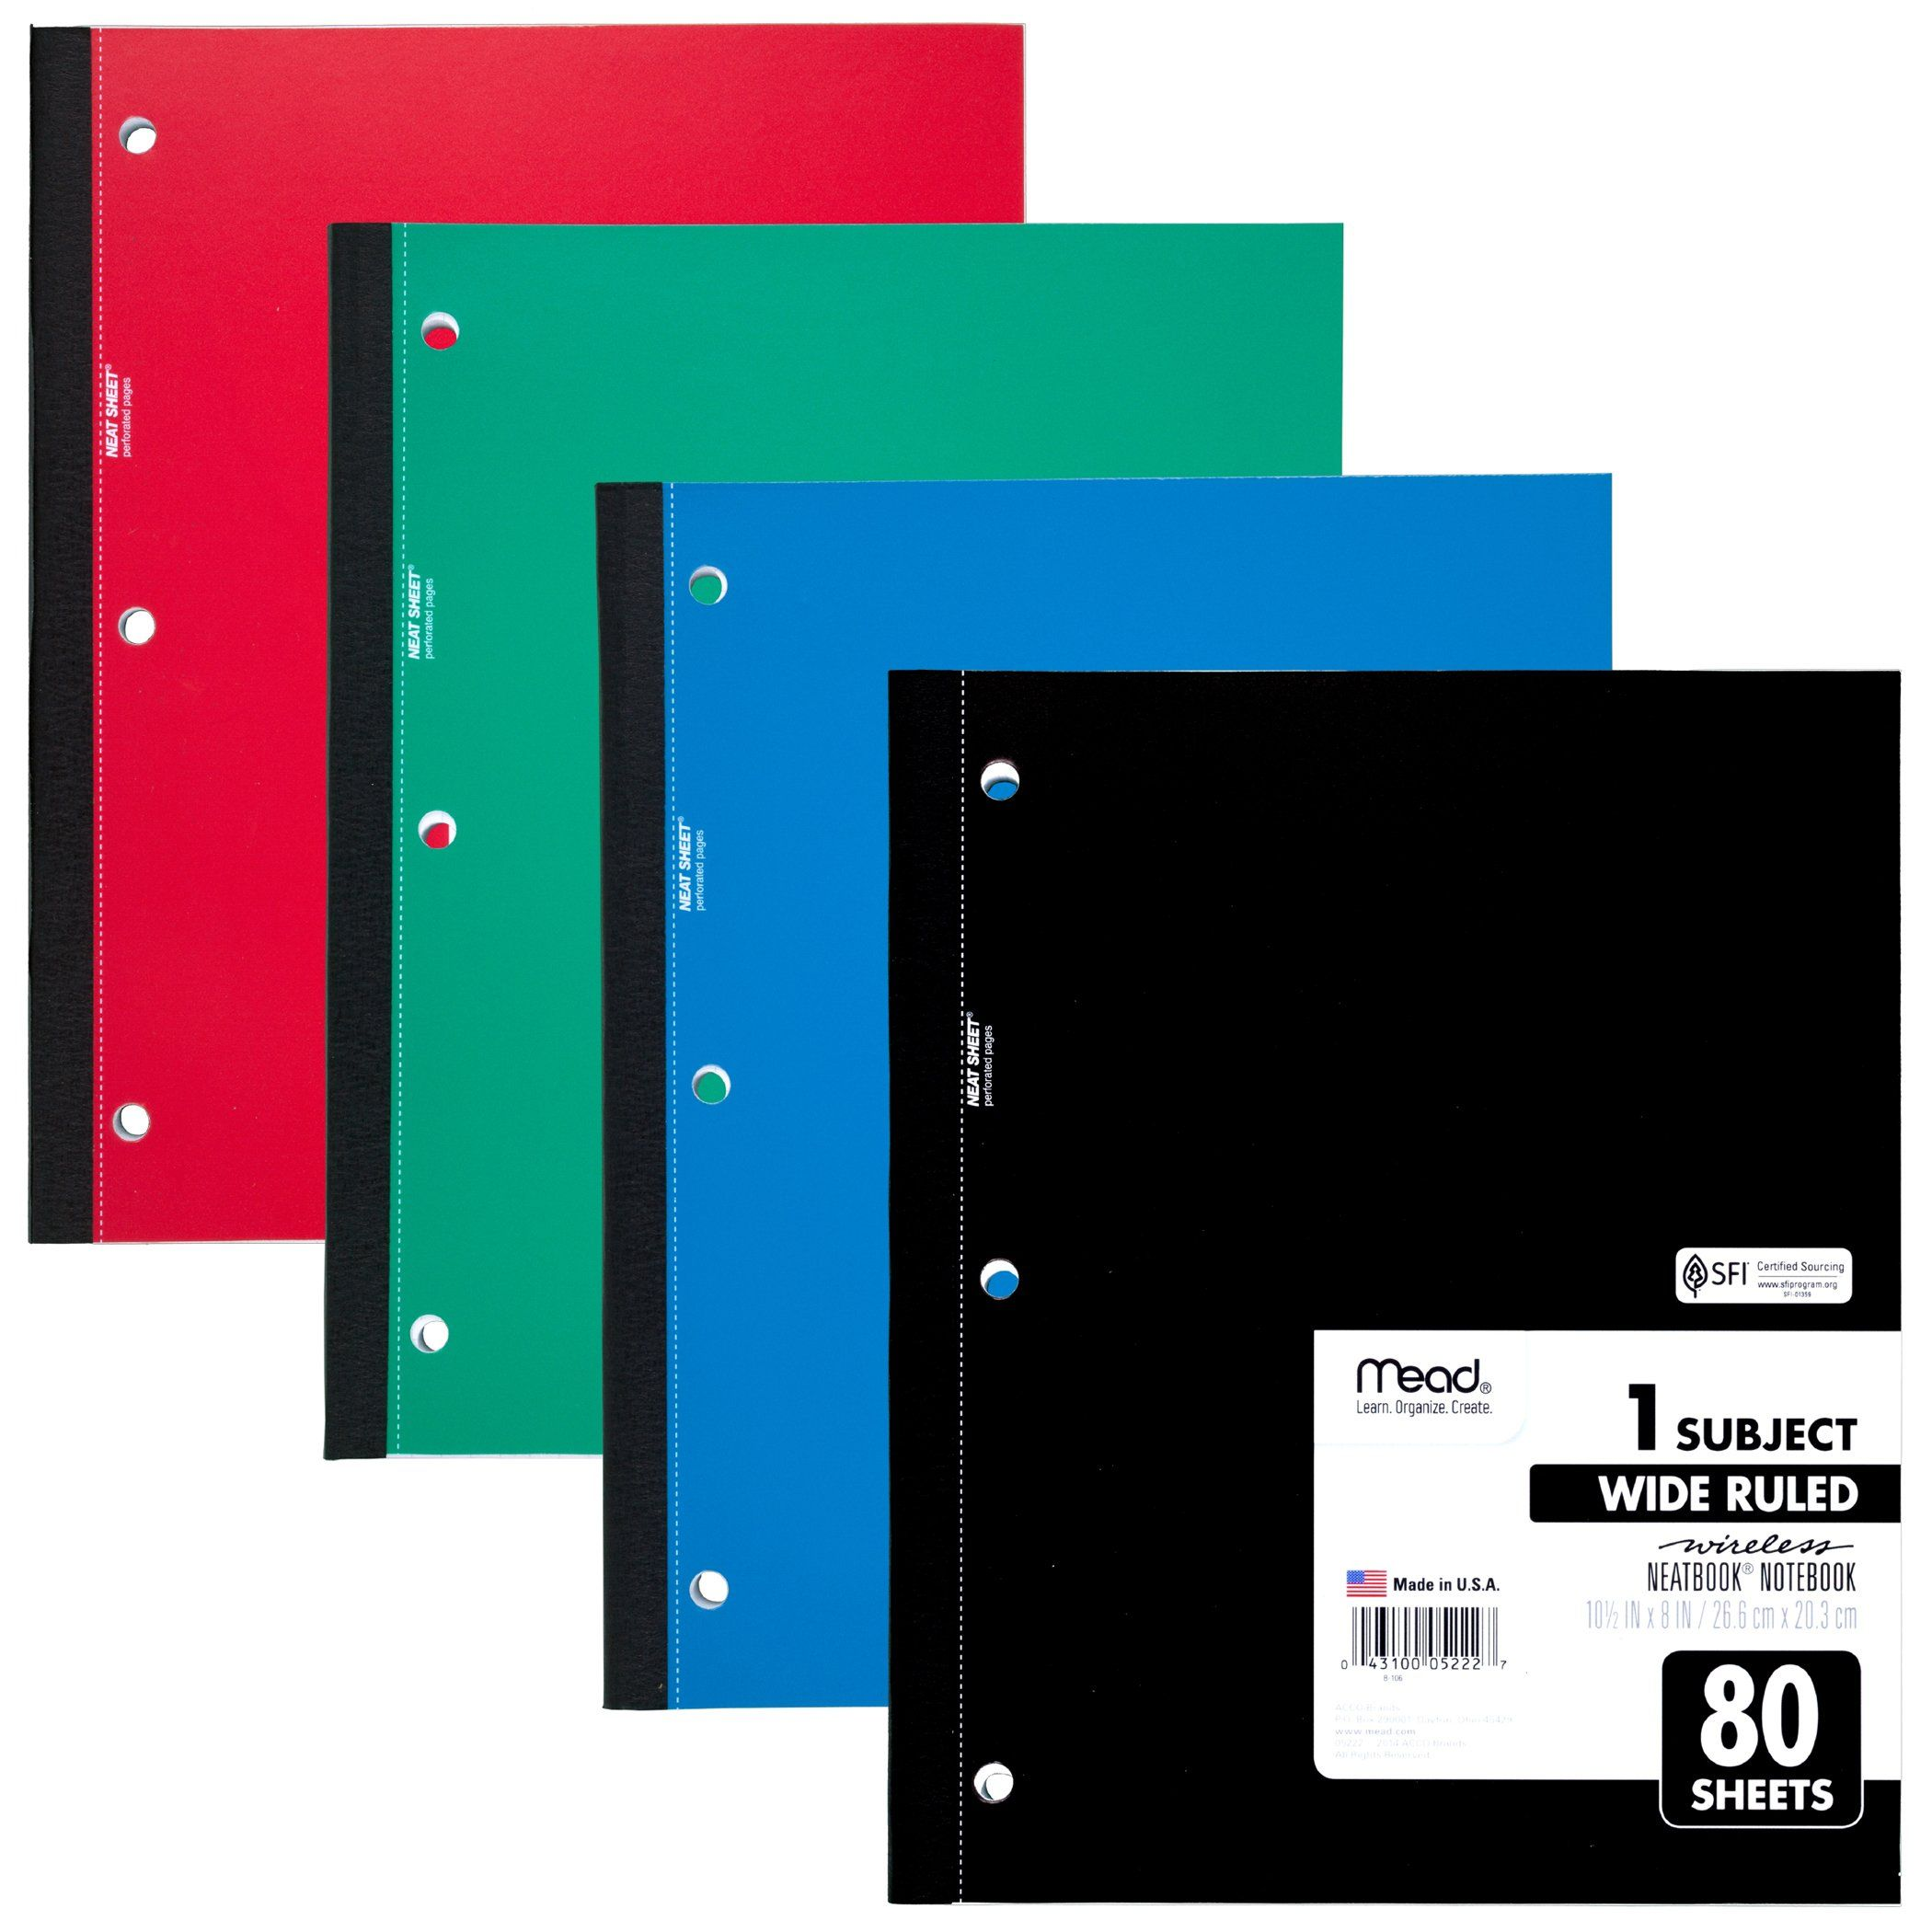 The 1 Subject Neatbook notebook has wireless binding that makes it snag free and easy to take on the go. Wide ruled sheets maximize space for notetaking at school, work or home. 80 sheets each, bundle of 12, 12 notebooks total